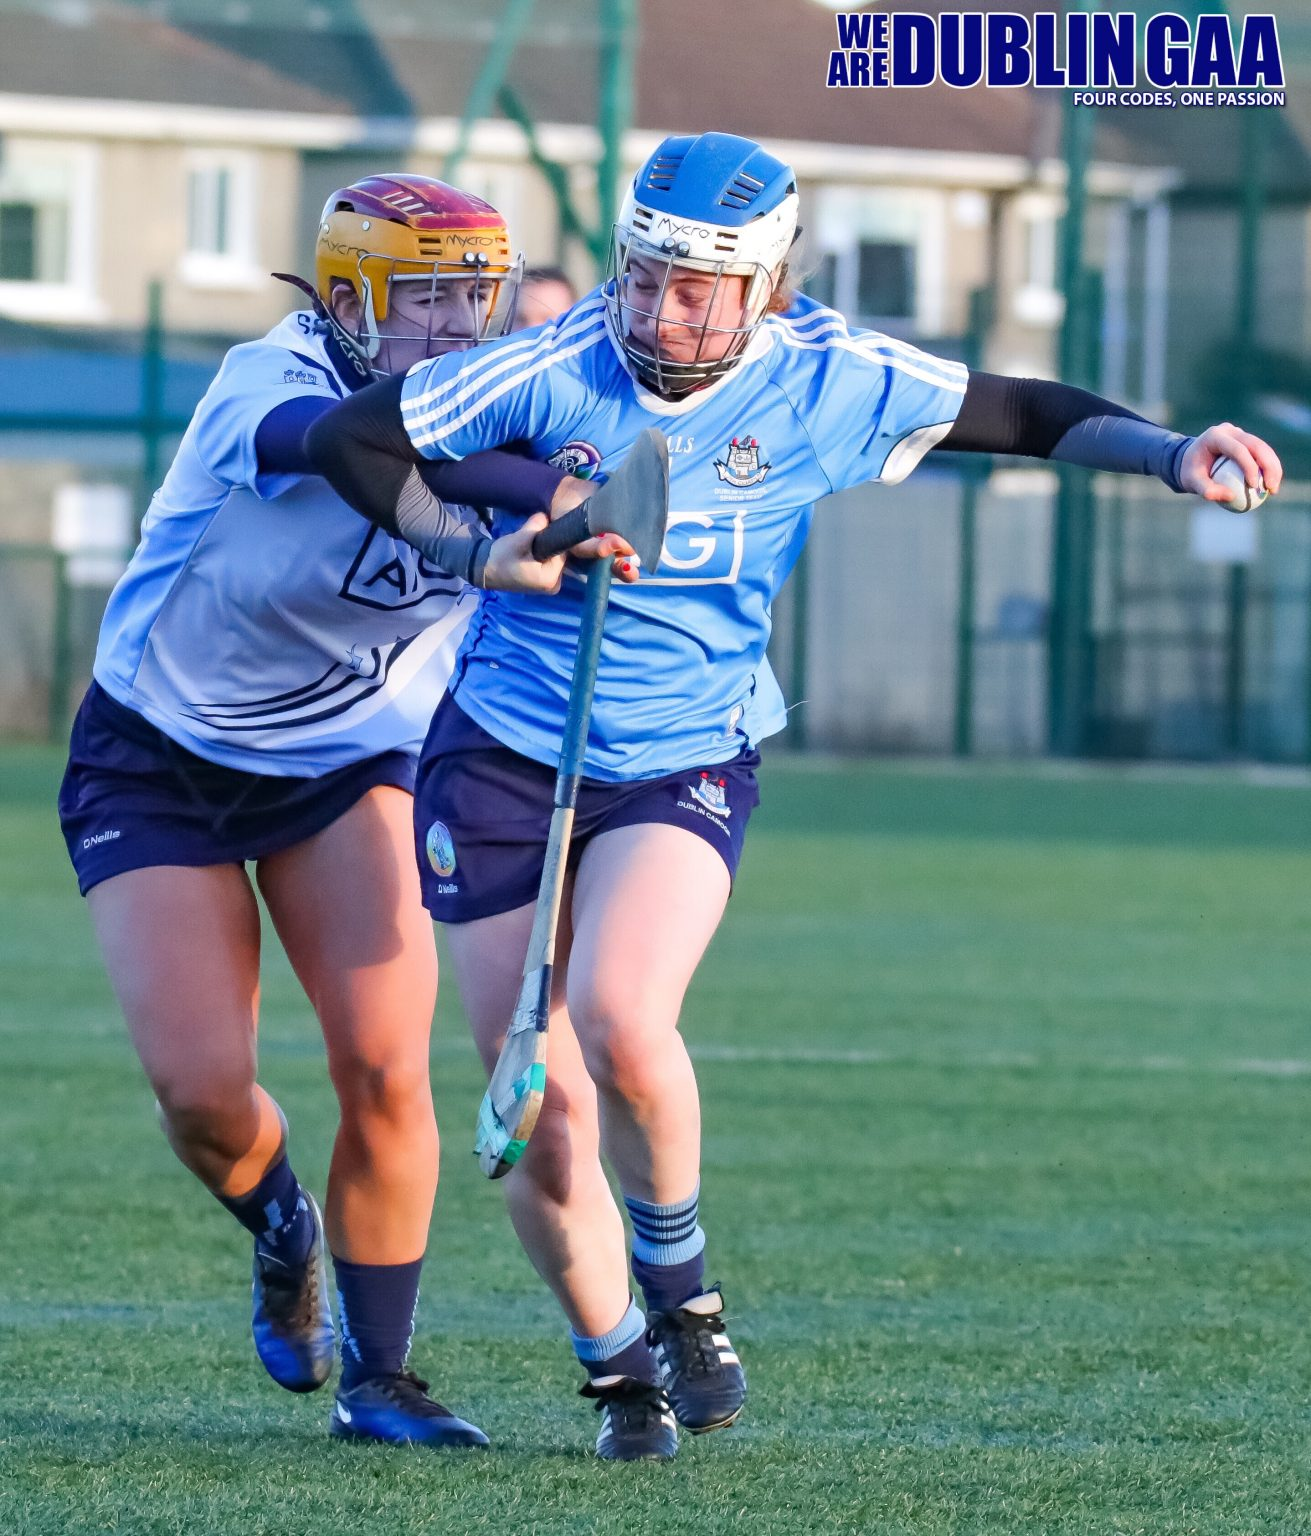 Dublin's Róisín Baker Being Tackled By Aishling Carolan From The Dubs Stars